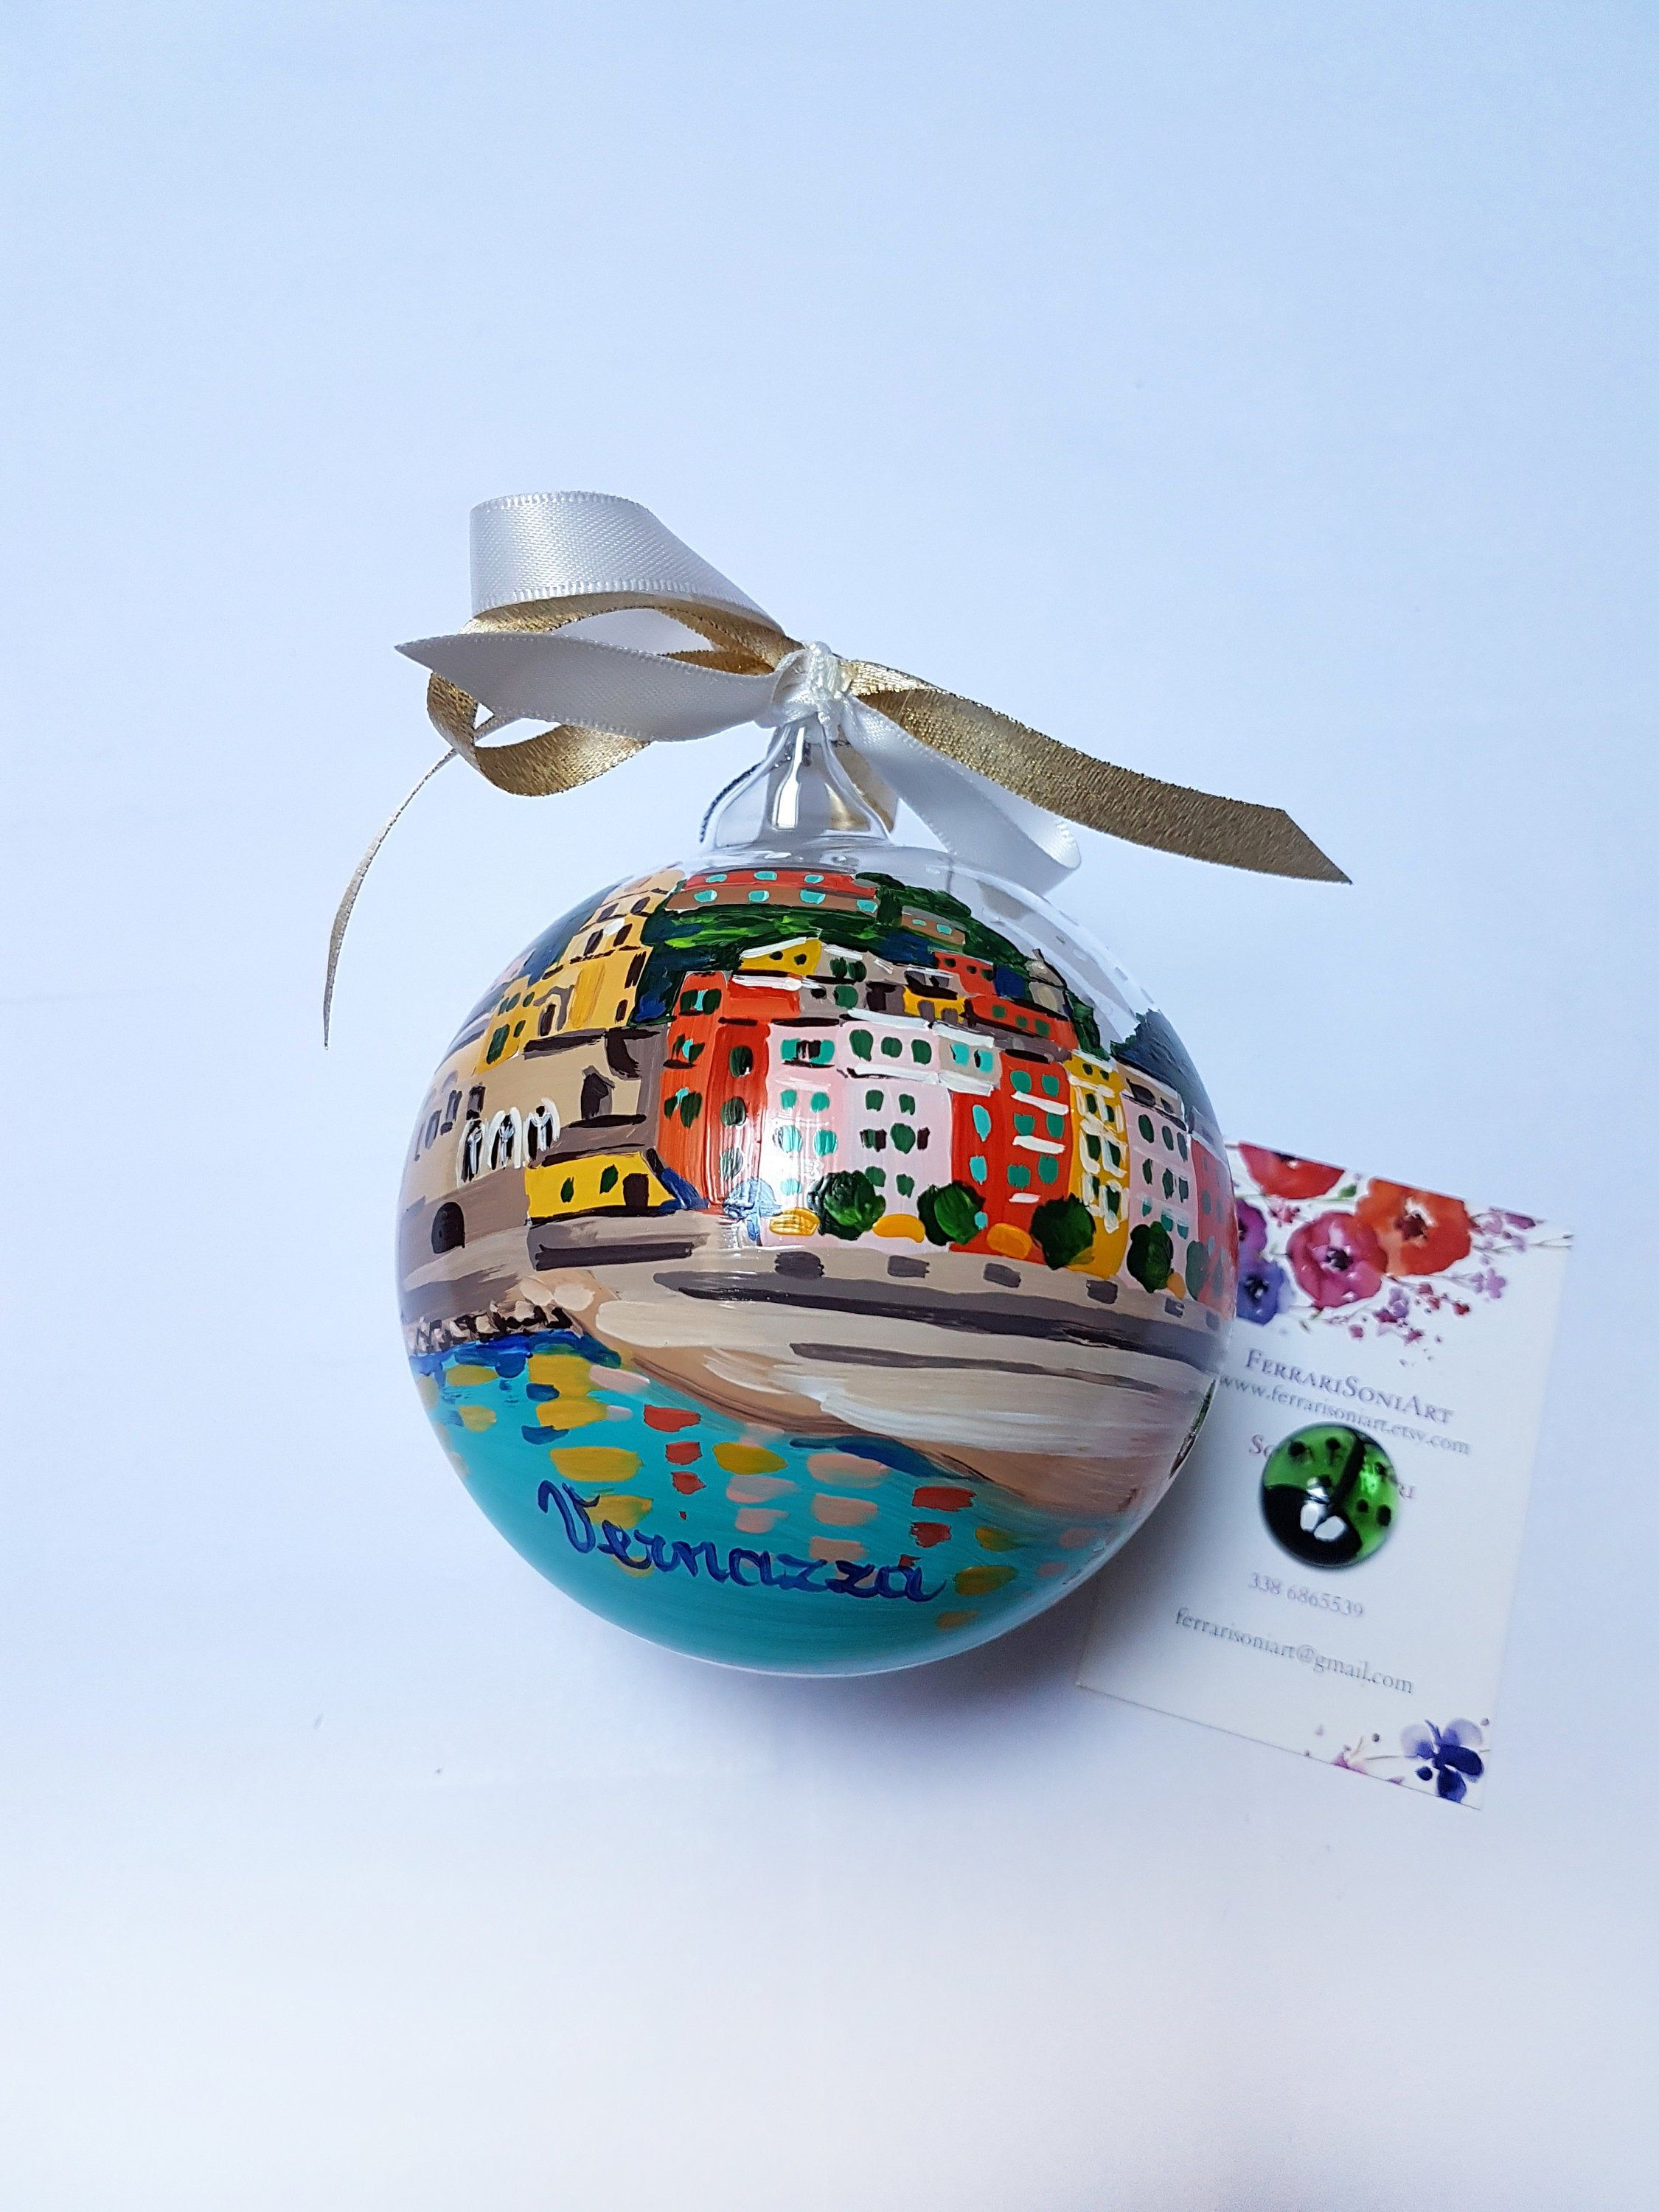 VERNAZZA custom Christmas ornament hand-painted on glass ball. Christmas gift for lovers Italy, sphere for travelers